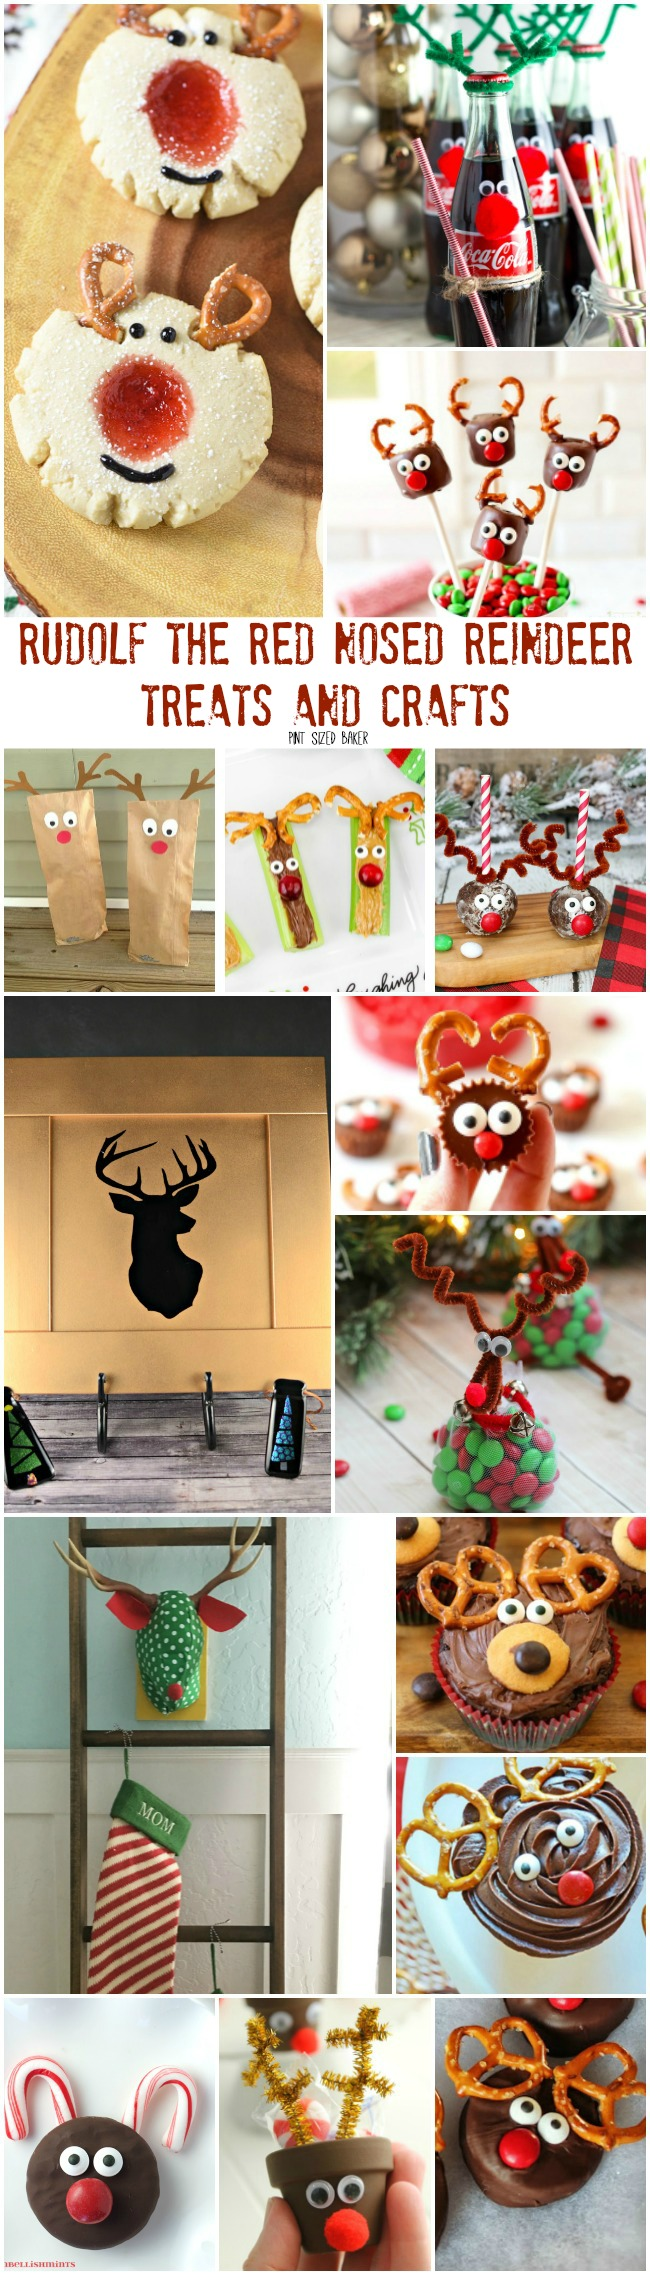 Here's 15 easy Rudolf the Red Nosed Reindeer Treats and Crafts for you and family to make this weekend. The kids can make most of these themselves and can give them to their friends for gifts.